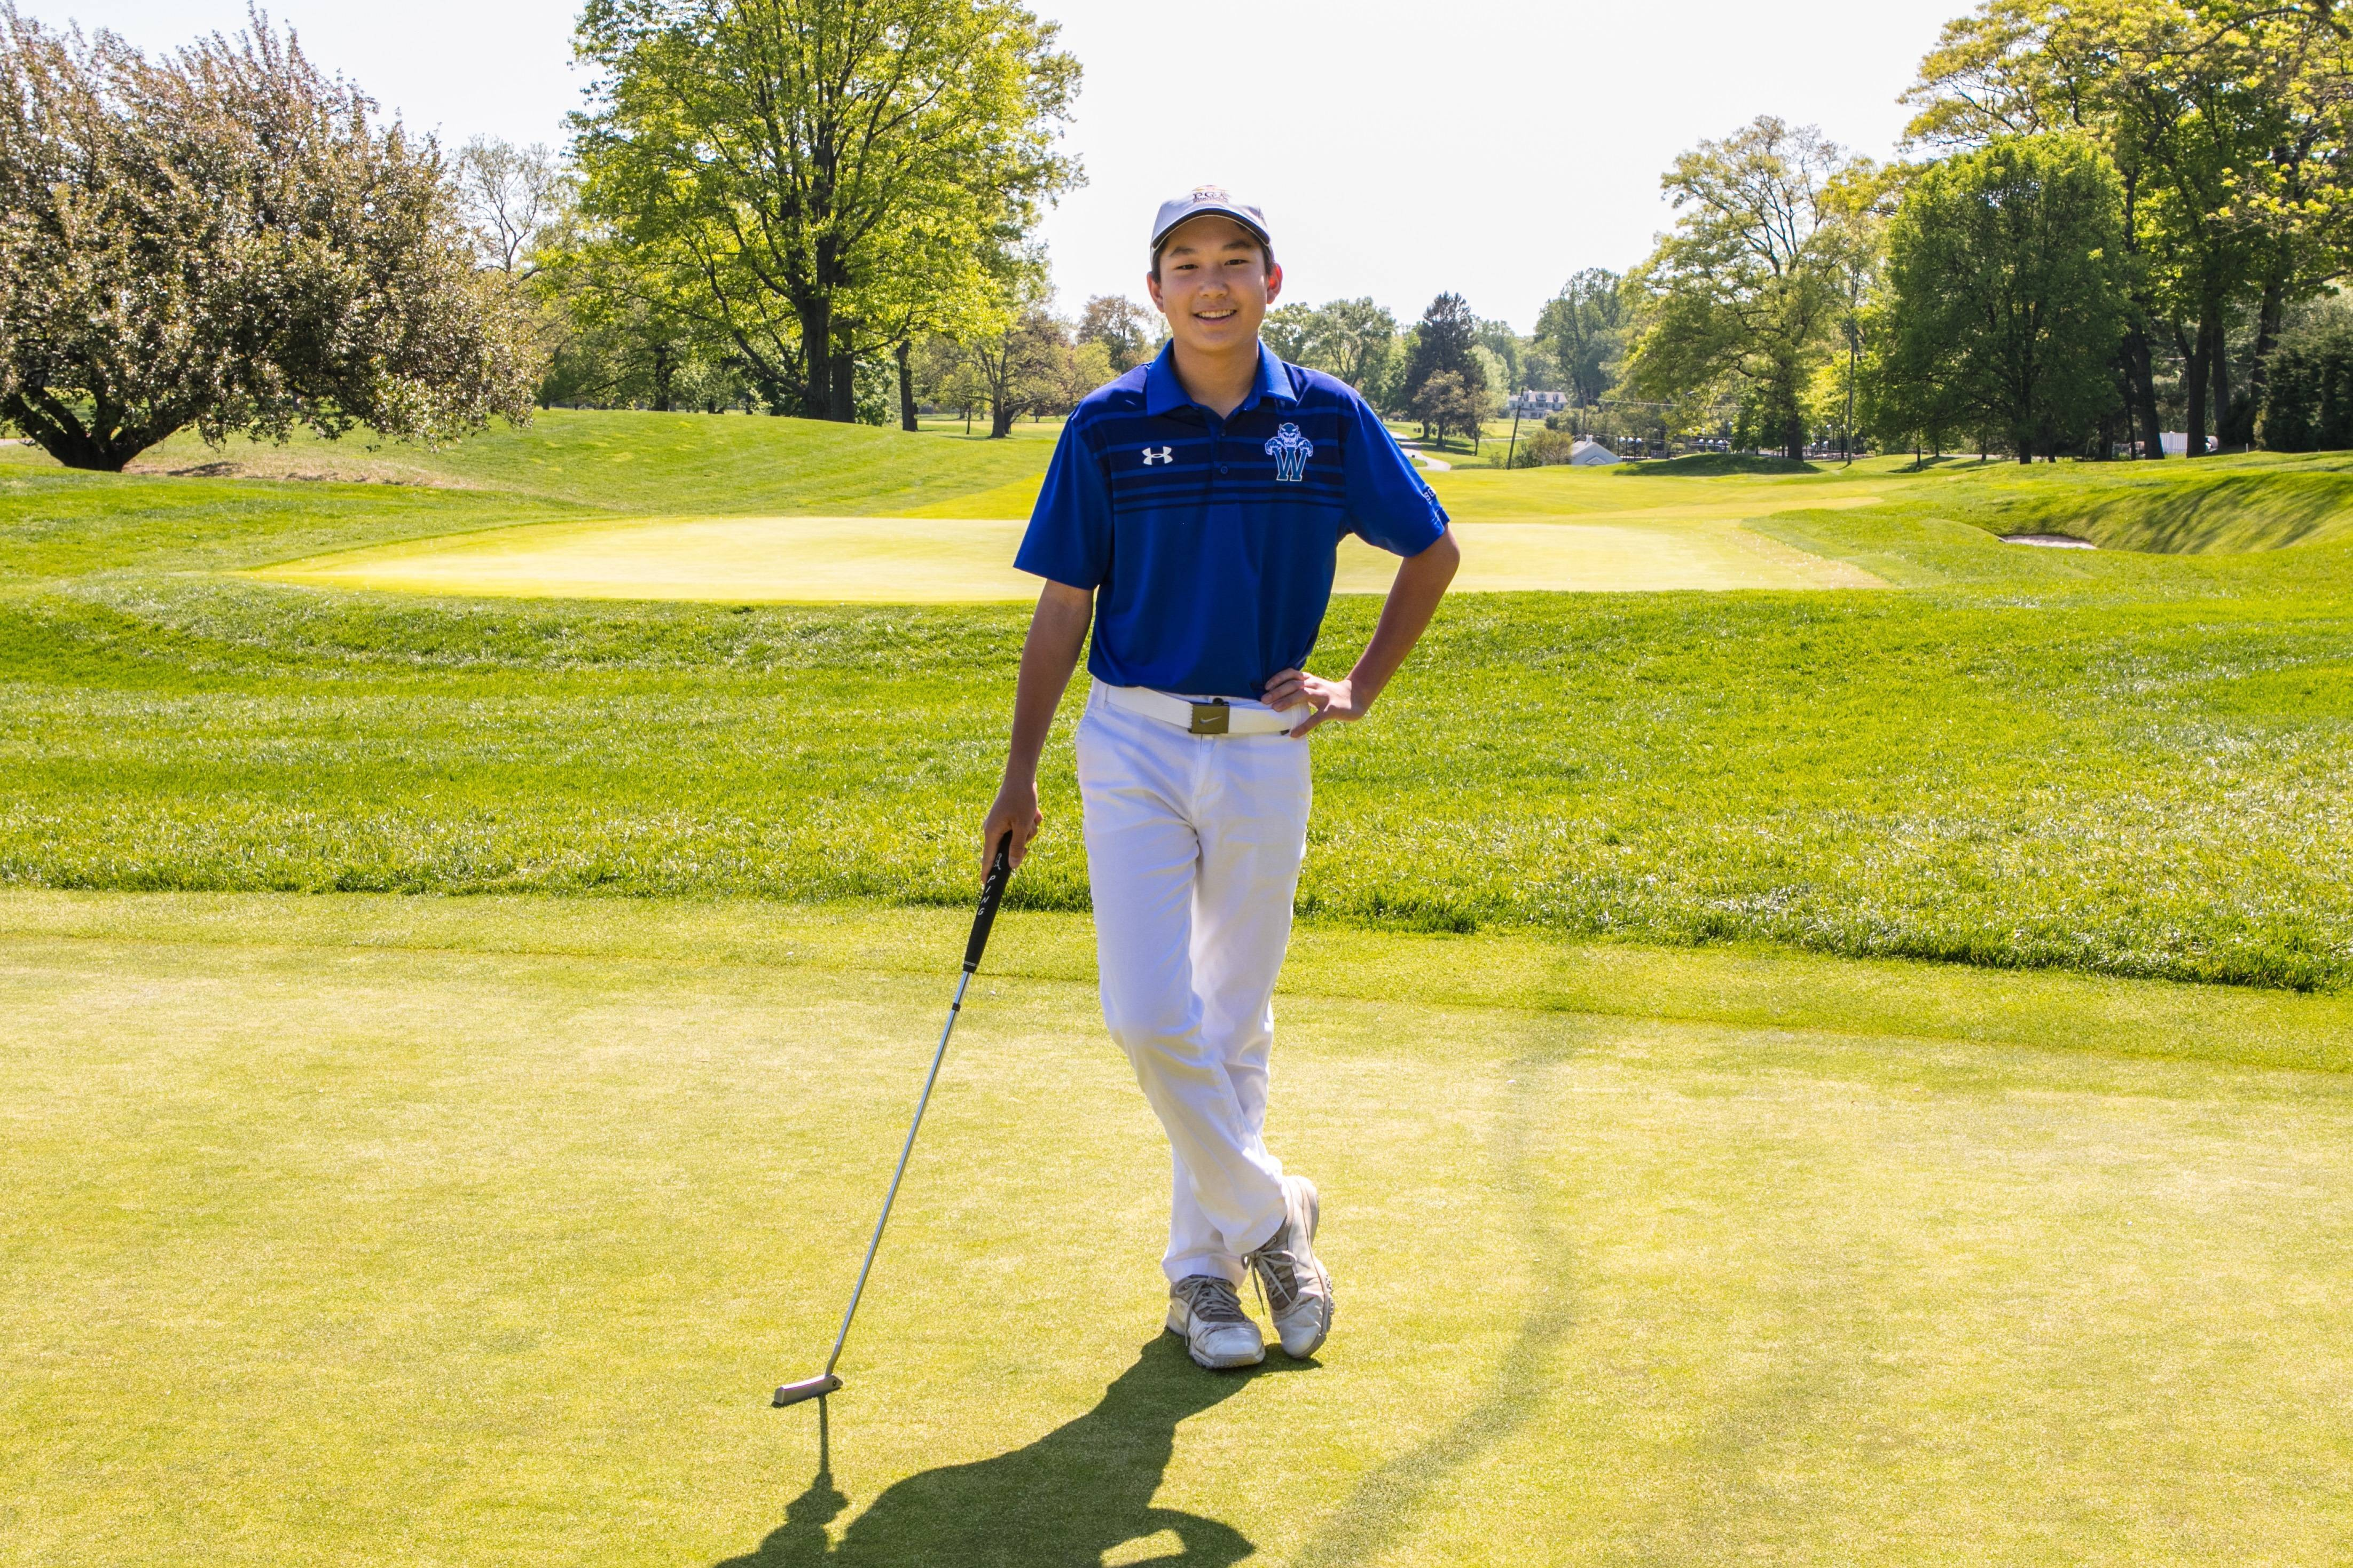 20190507-WHS Boys Golf_DW_0534.jpg